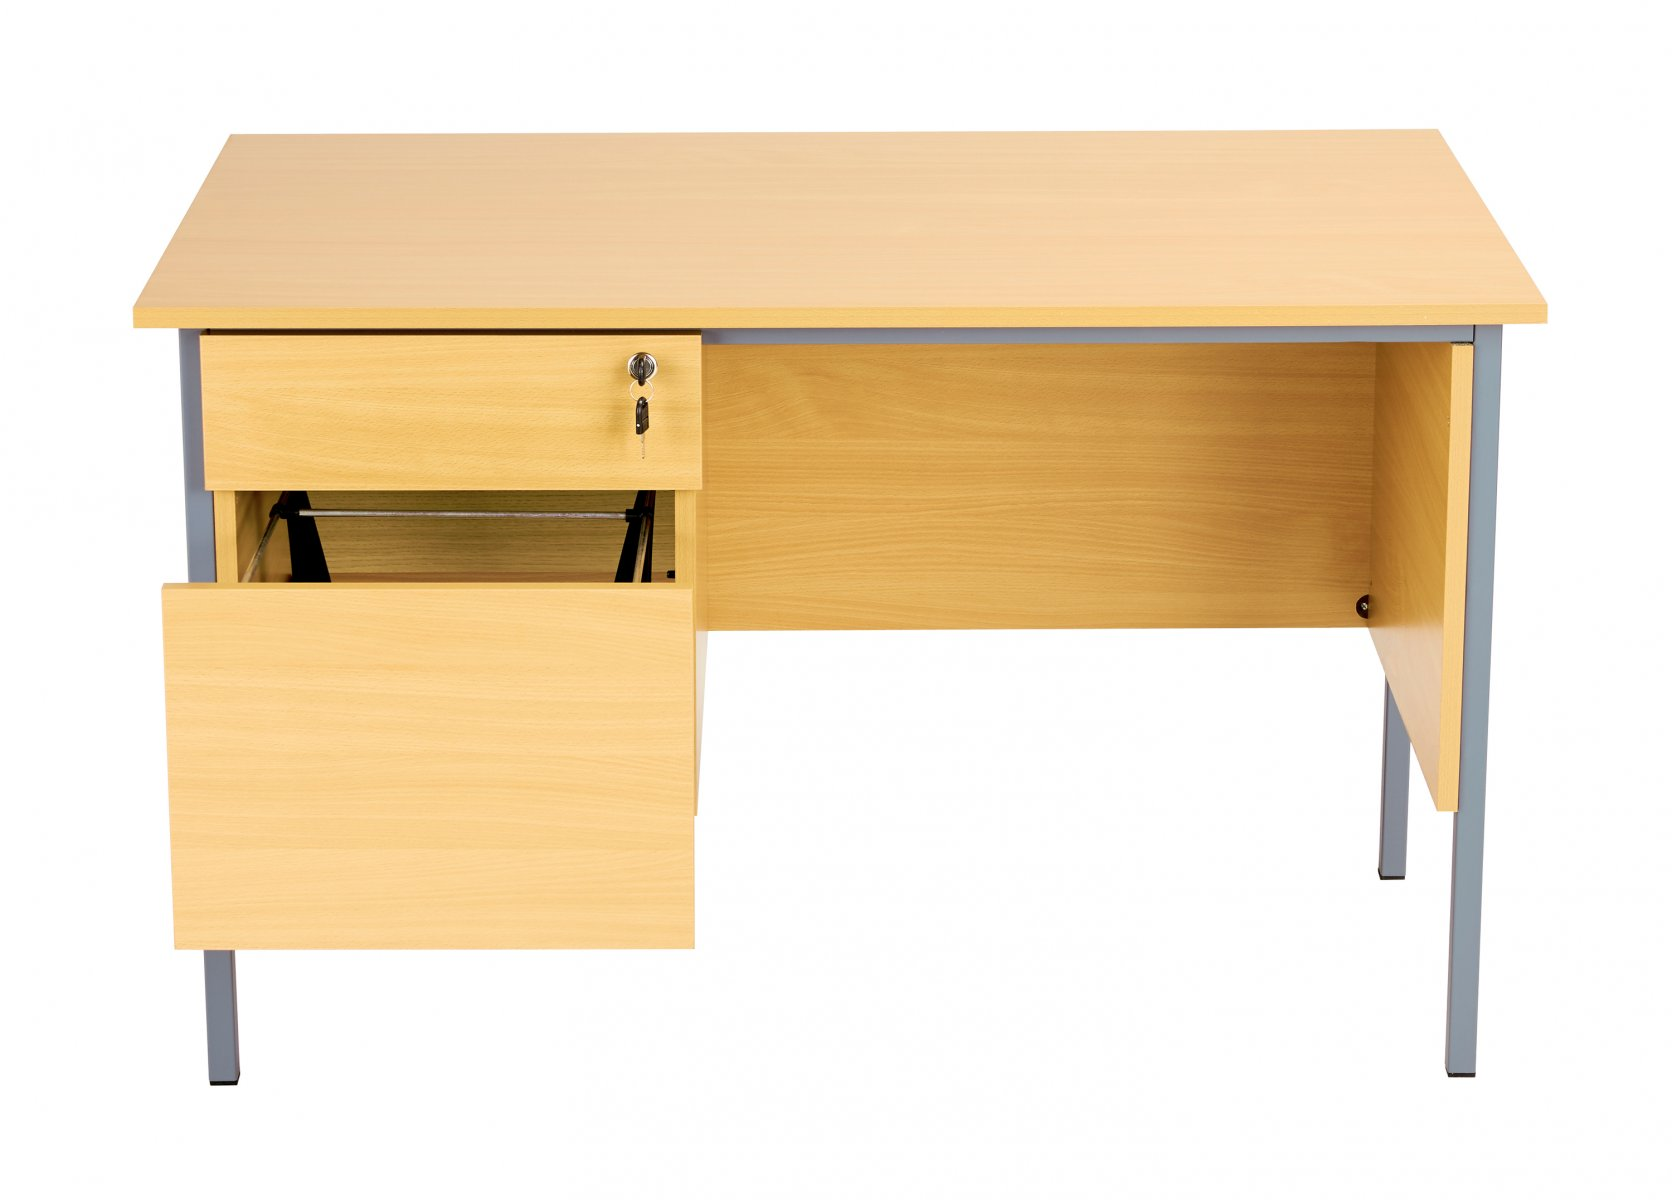 Eco 18 Rectangular 120 Desk with Single 2 Drawer Pedestal - Oak